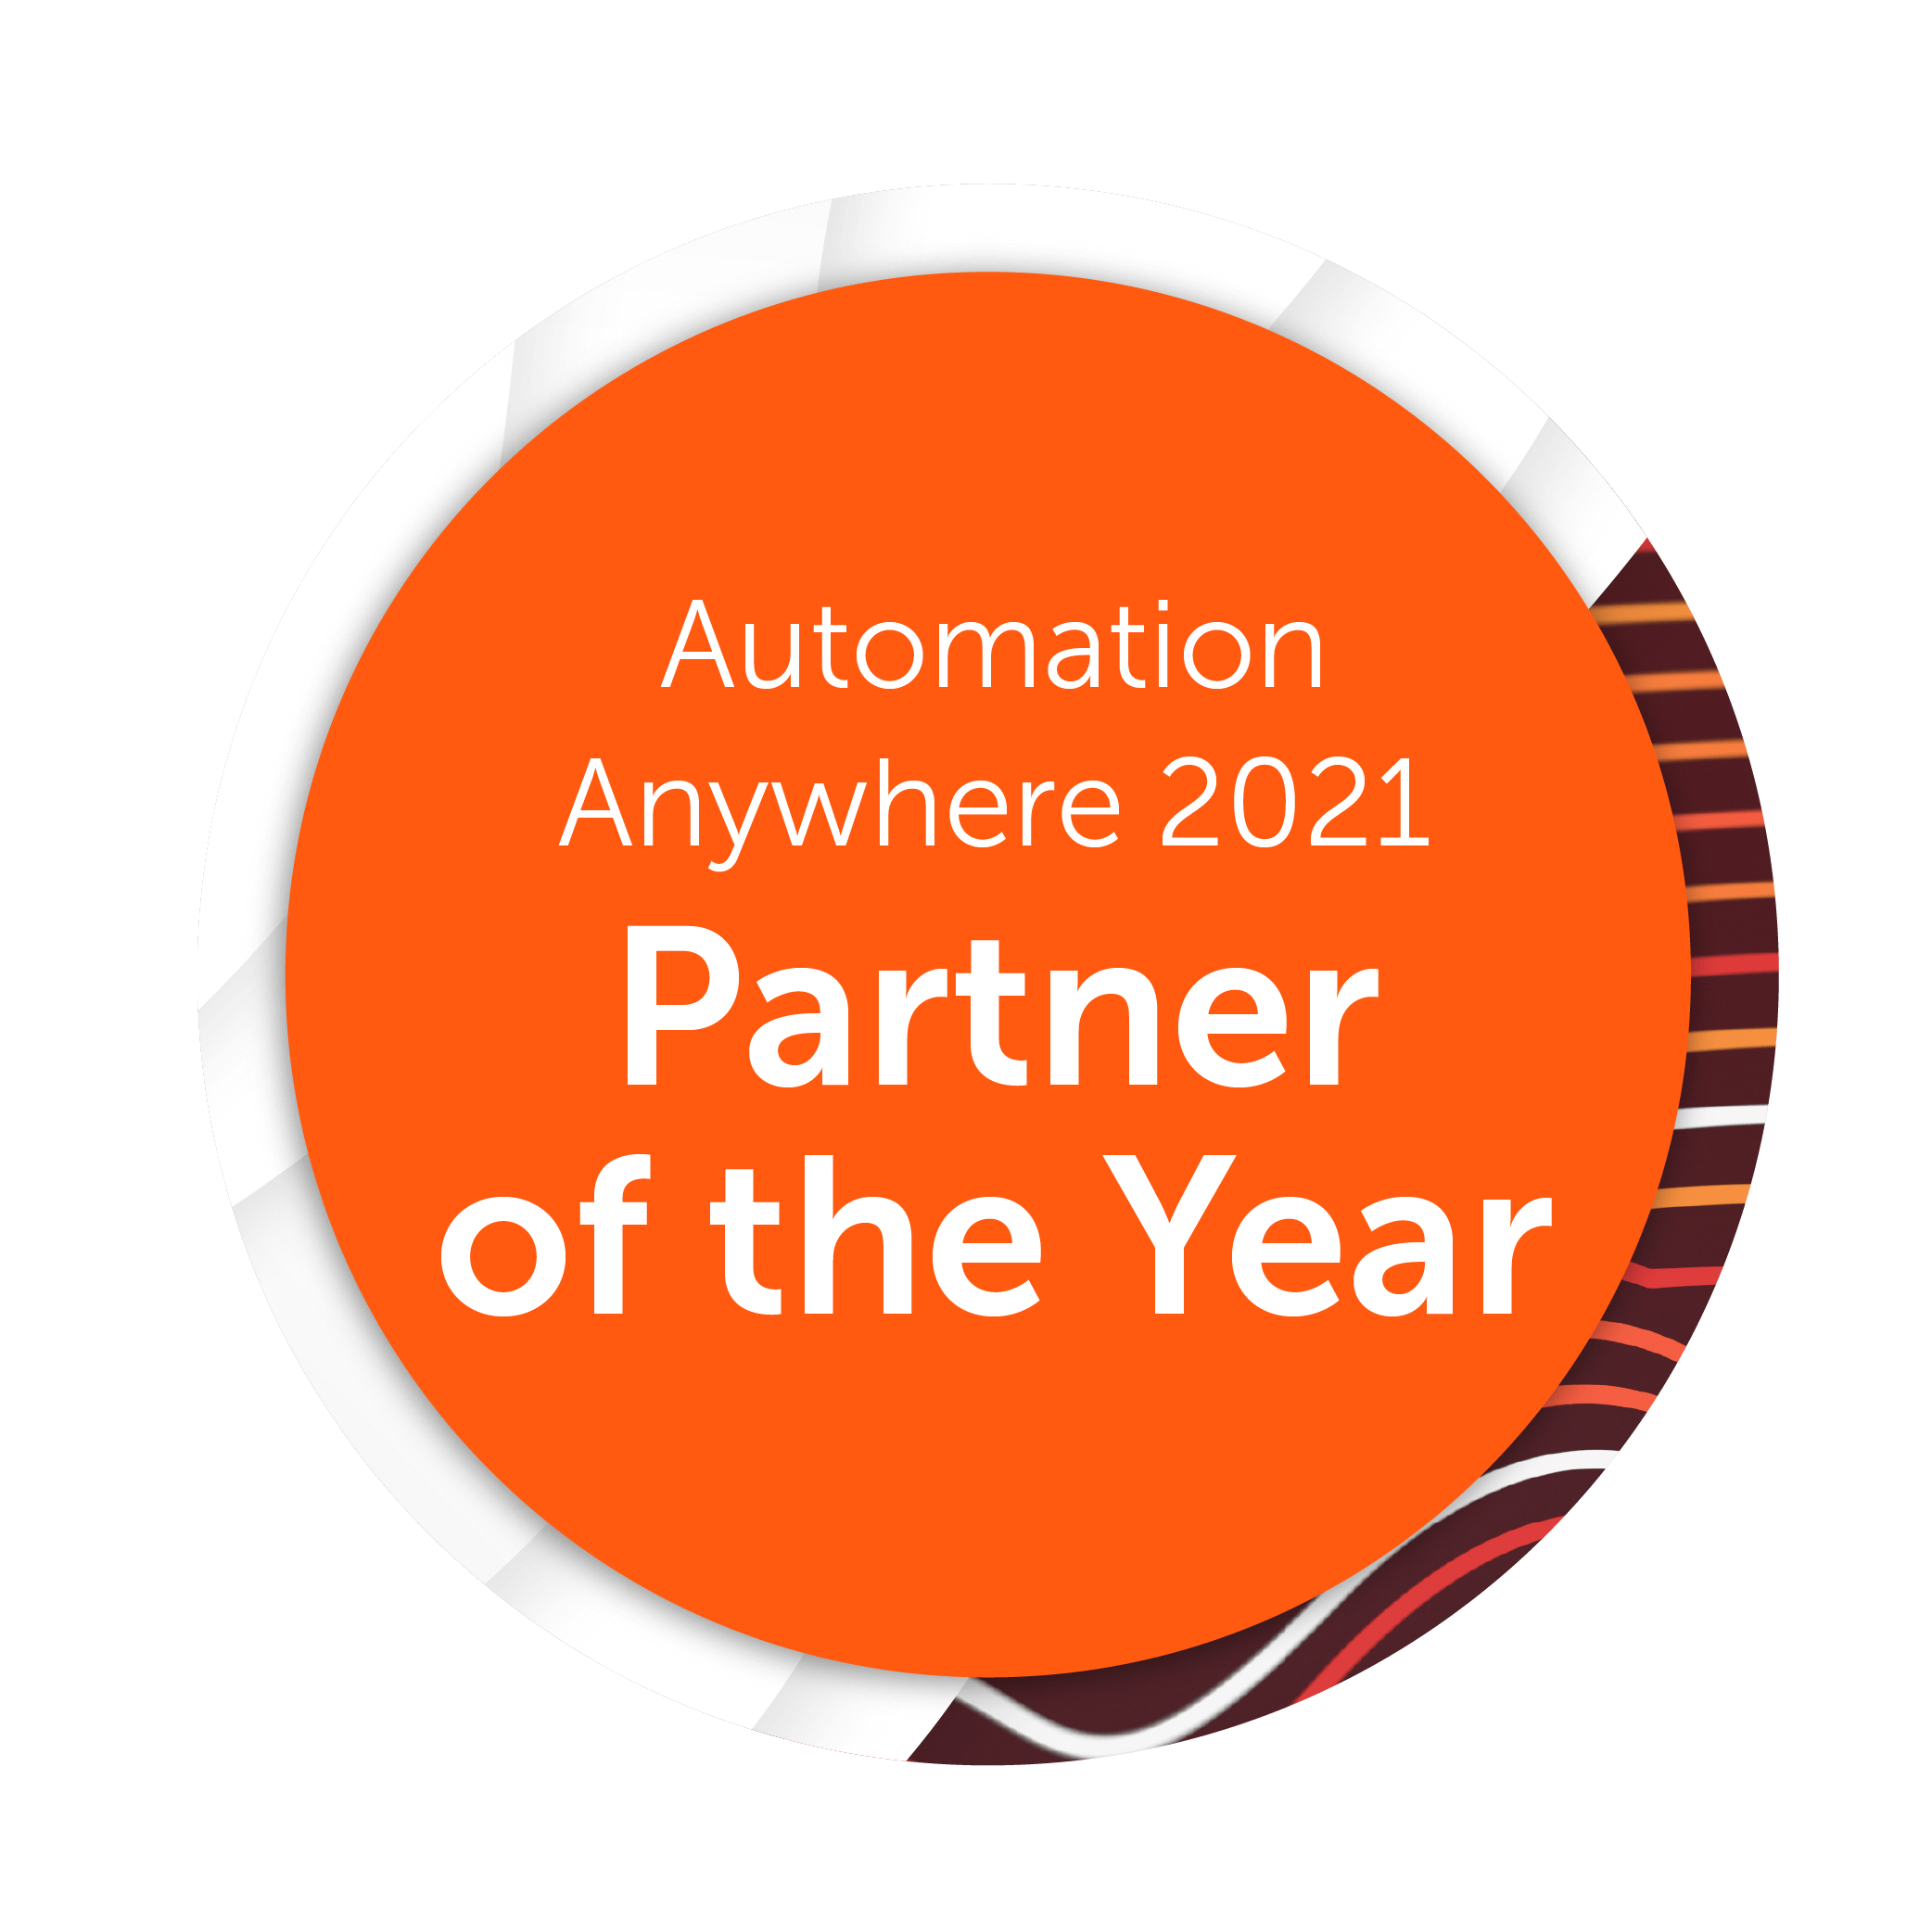 Automation Anywhere and BP3 Global today announced that it has been named as the Automation Anywhere Partner of the Year for AARI Solutions in the Americas. The recognition was presented at the Automation Anywhere Virtual Partner Summit on April 14th to recognize partners worldwide for their investments and dedication to providing solutions and services that customers rely on to automate their businesses.